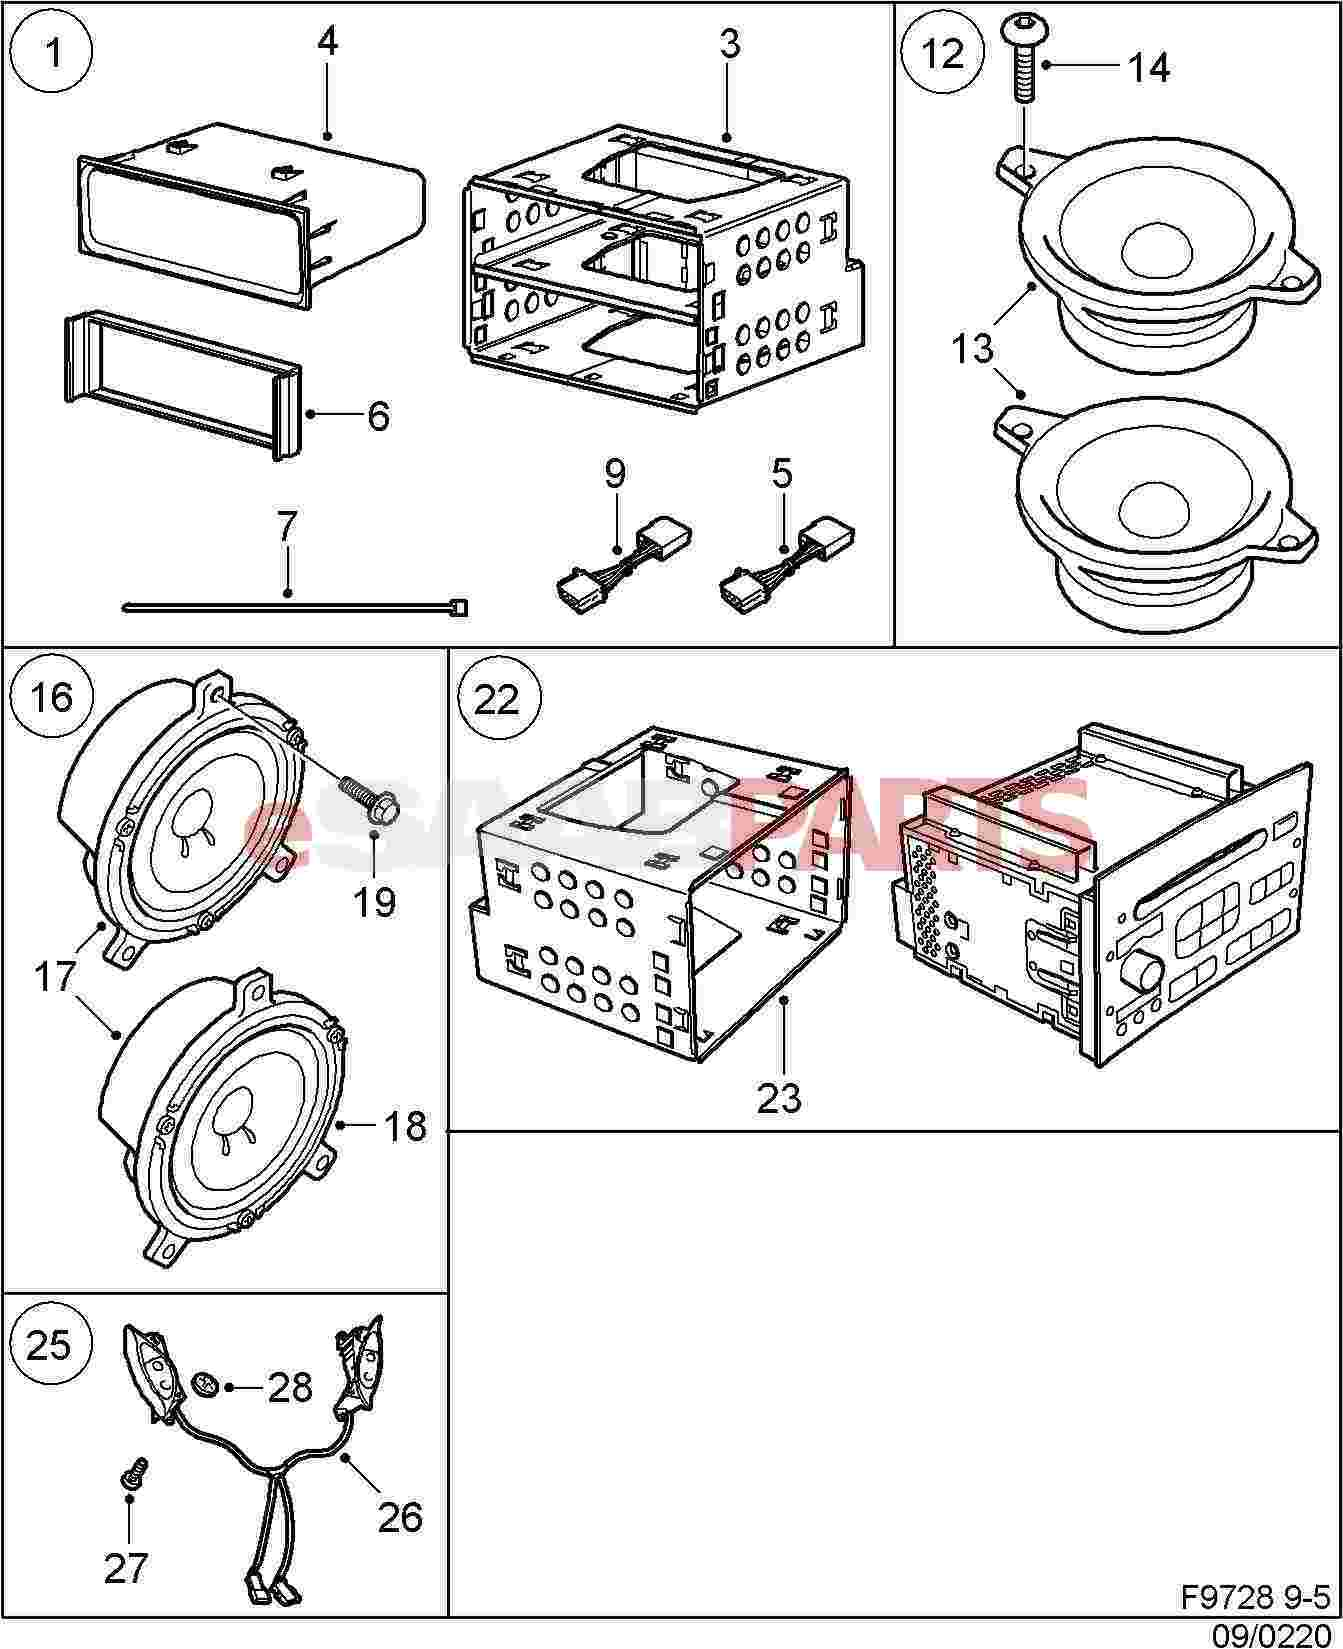 Saab Steering Wheel Controls For Audio System